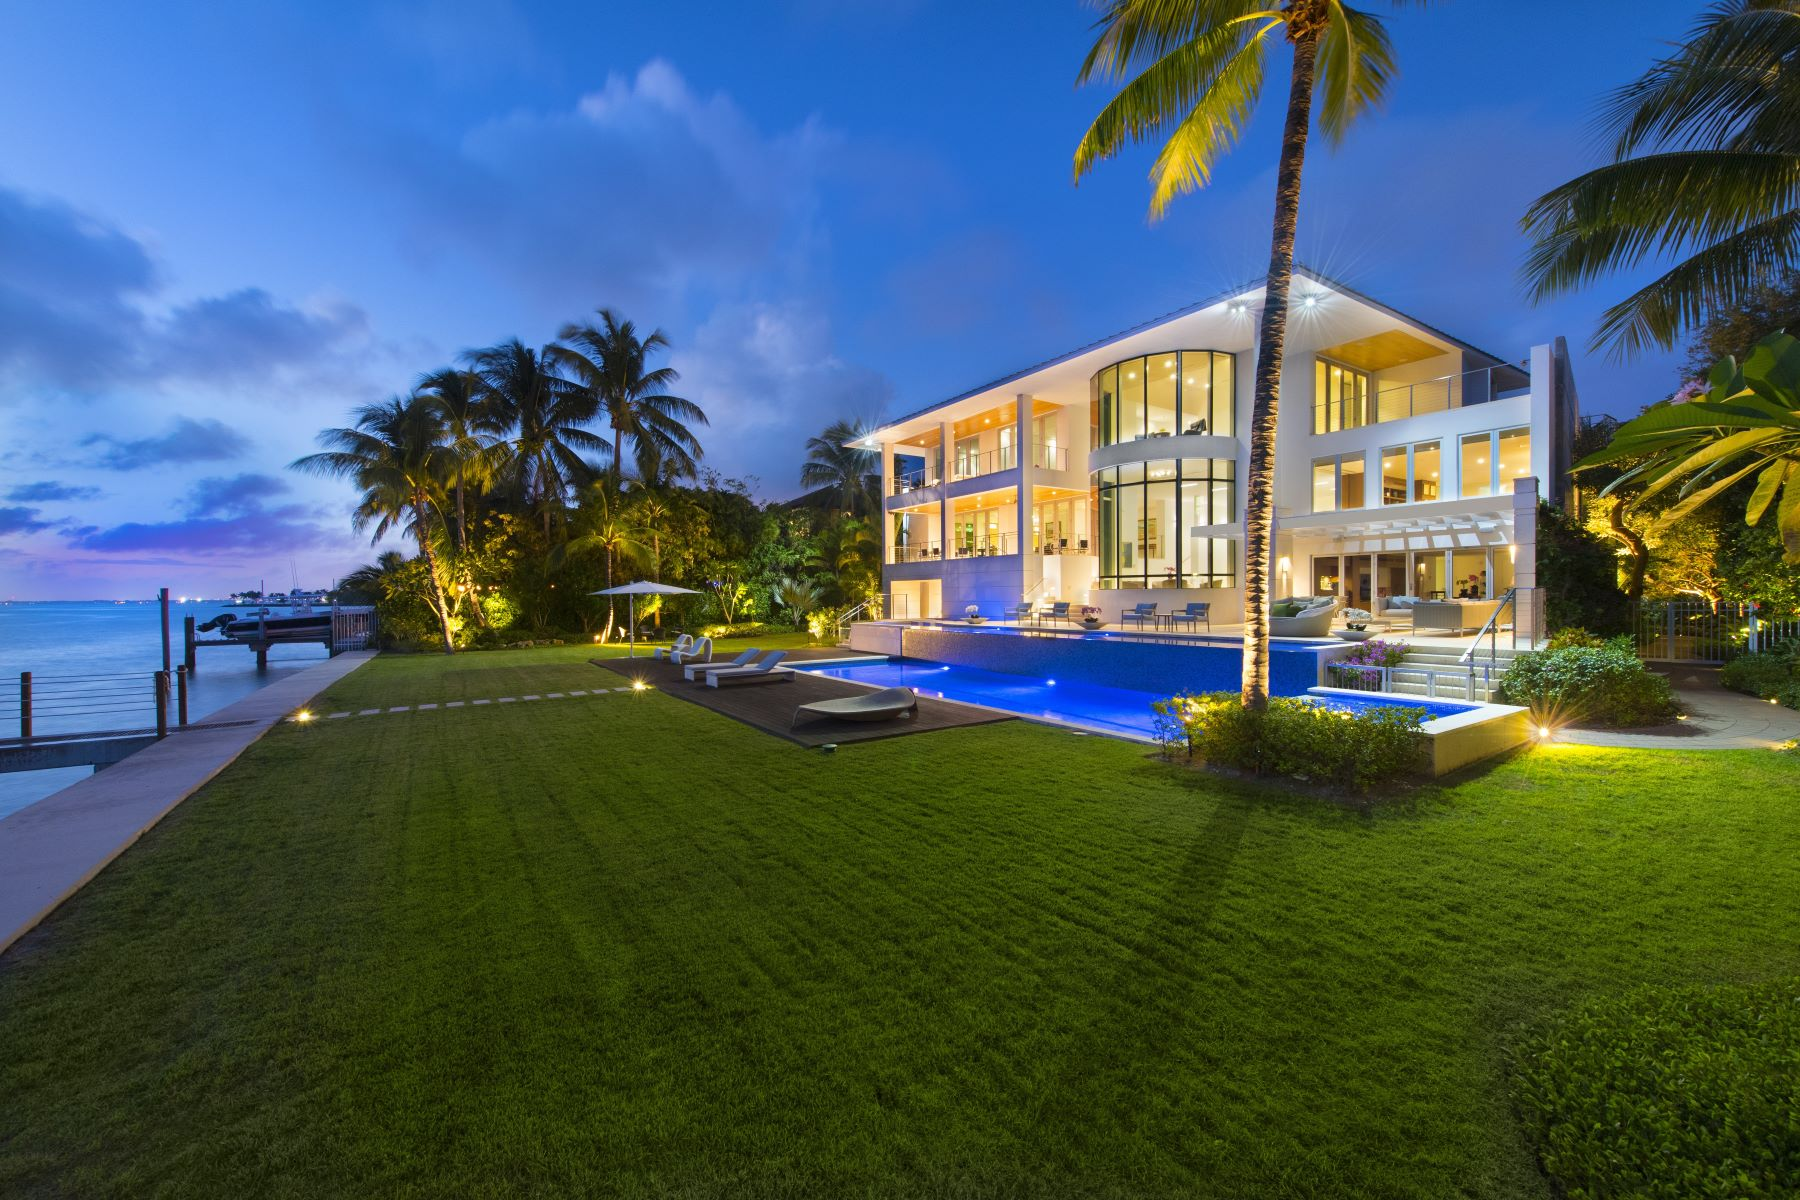 Single Family Homes for Active at 500 S Mashta Dr Key Biscayne, Florida 33149 United States